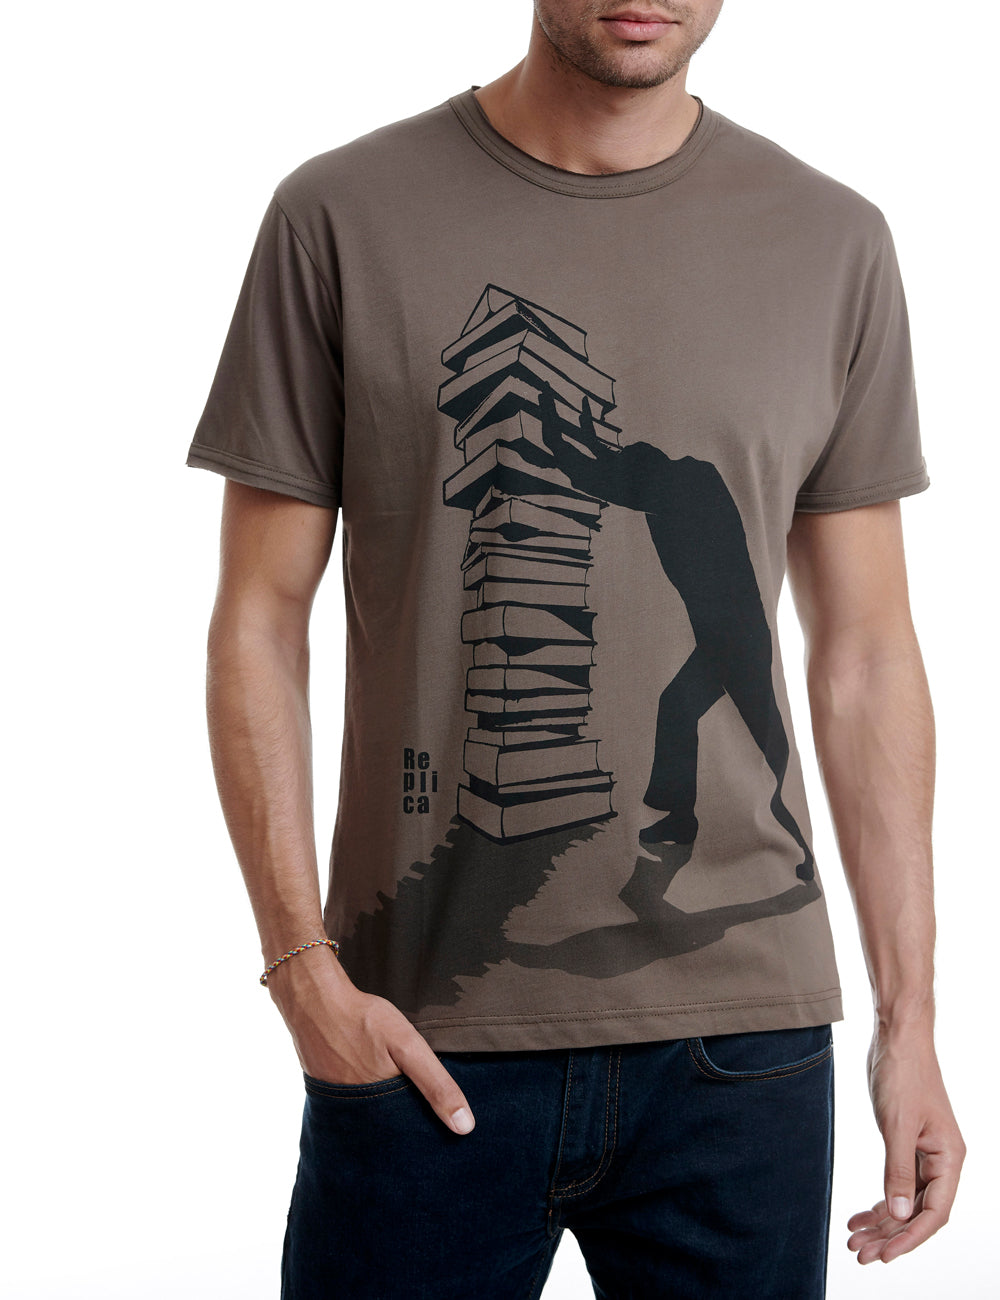 Books replica tshirt Greece brown